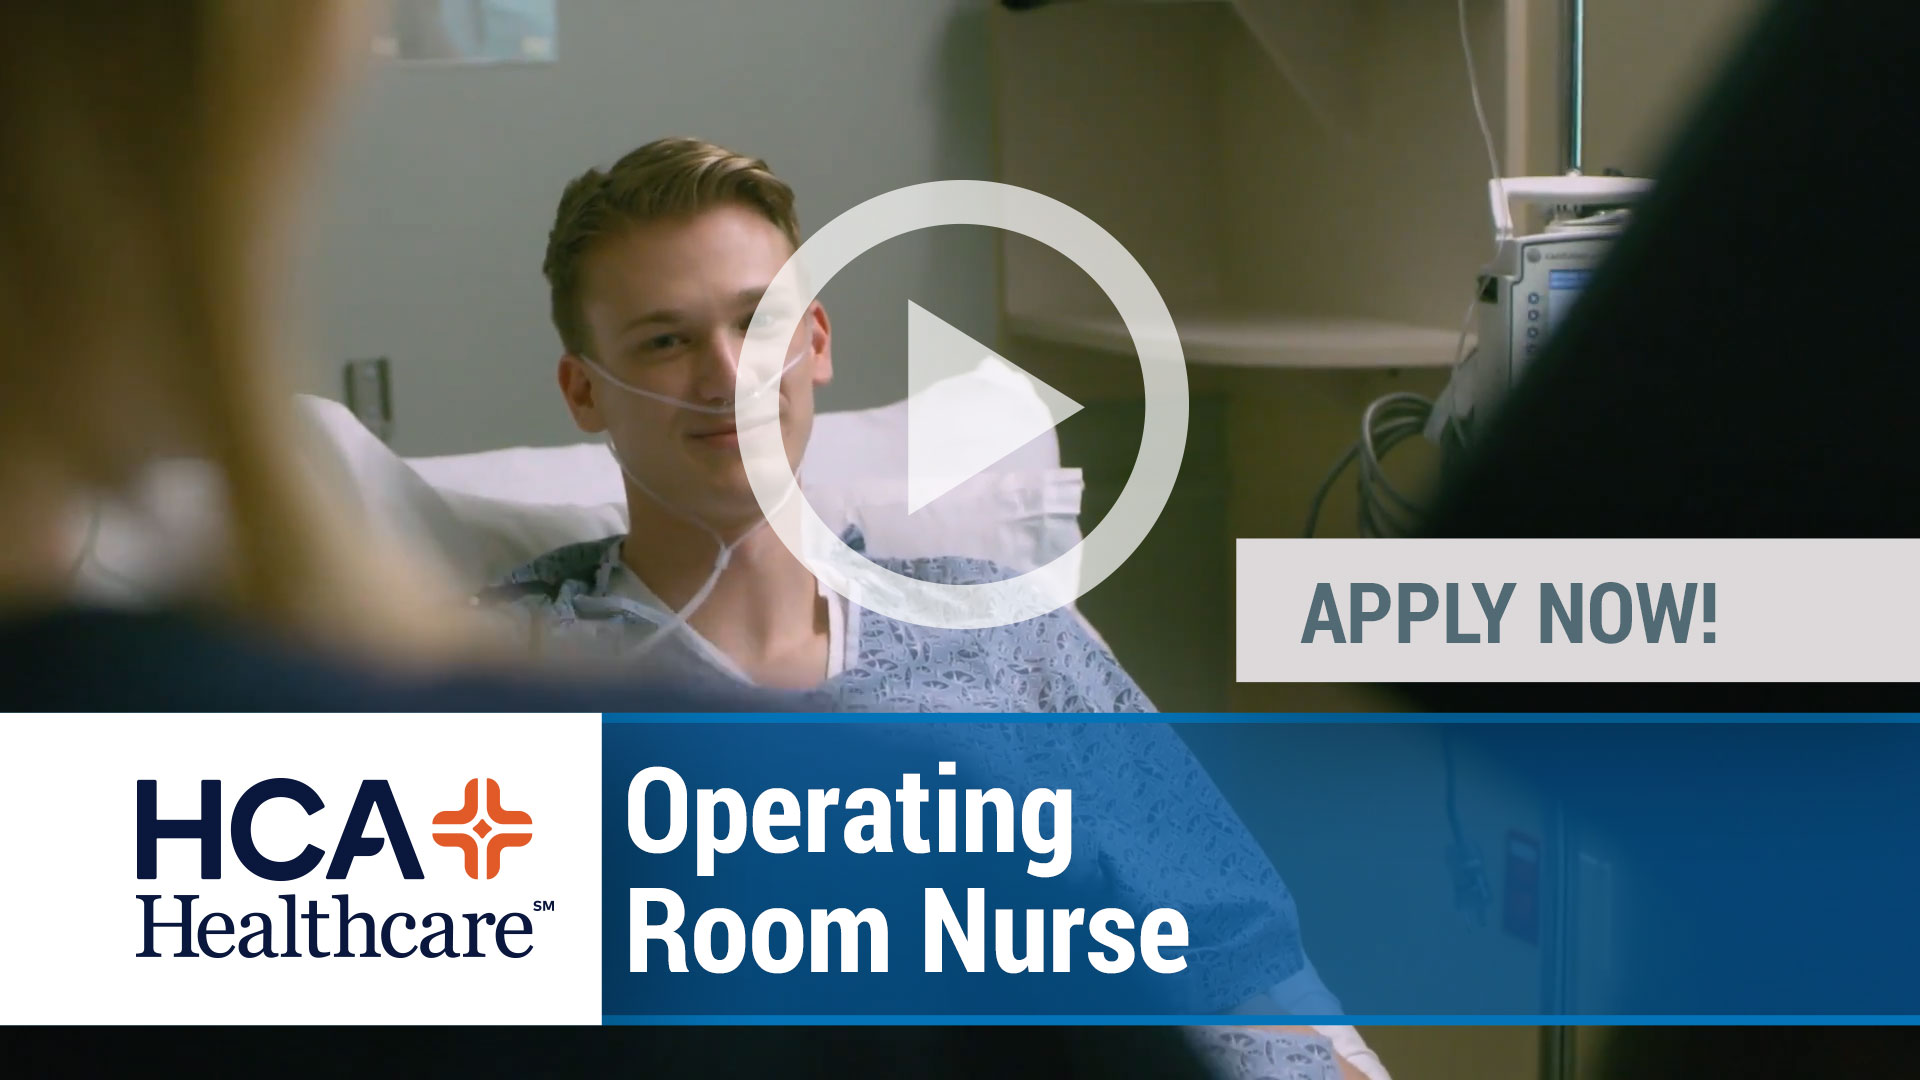 Watch our careers video for available job opening Operating Room Nurse in San Jose, California